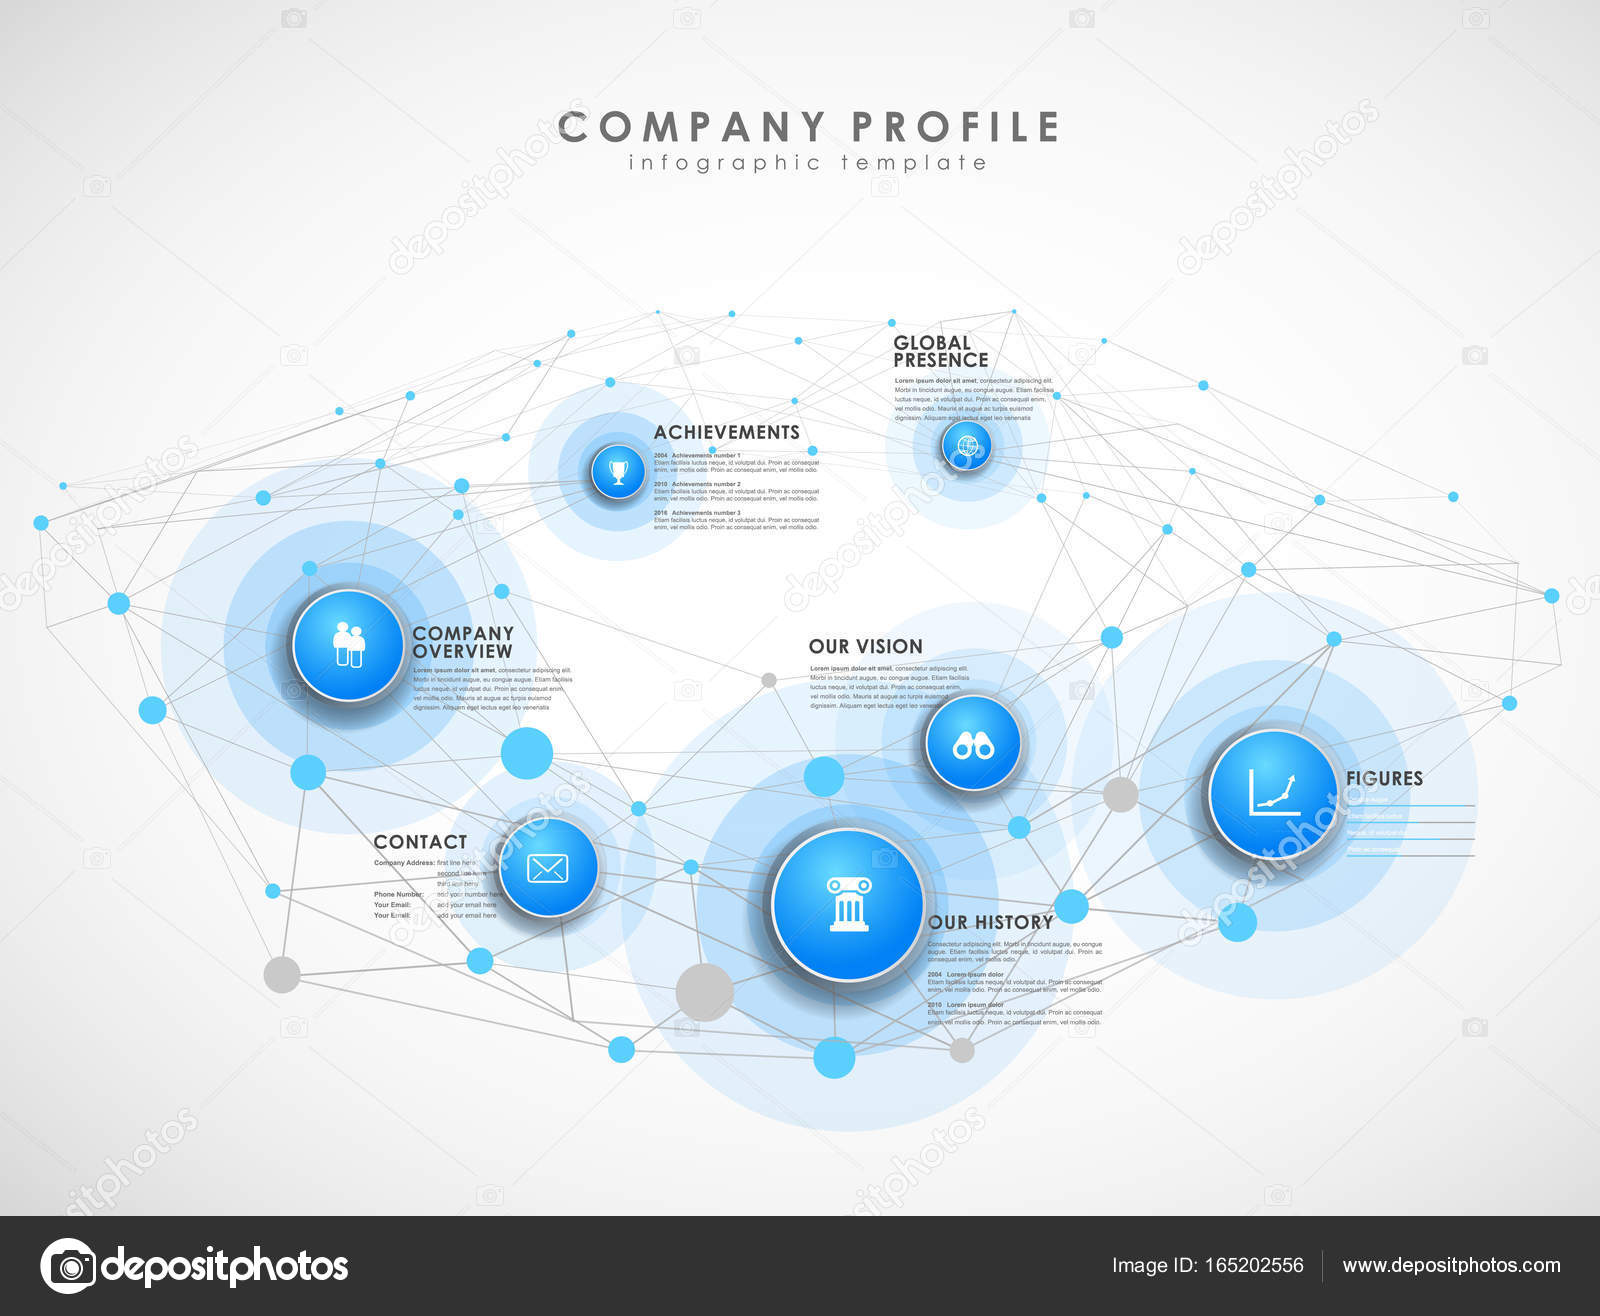 Company profile overview template with blue circles and dots - l ...